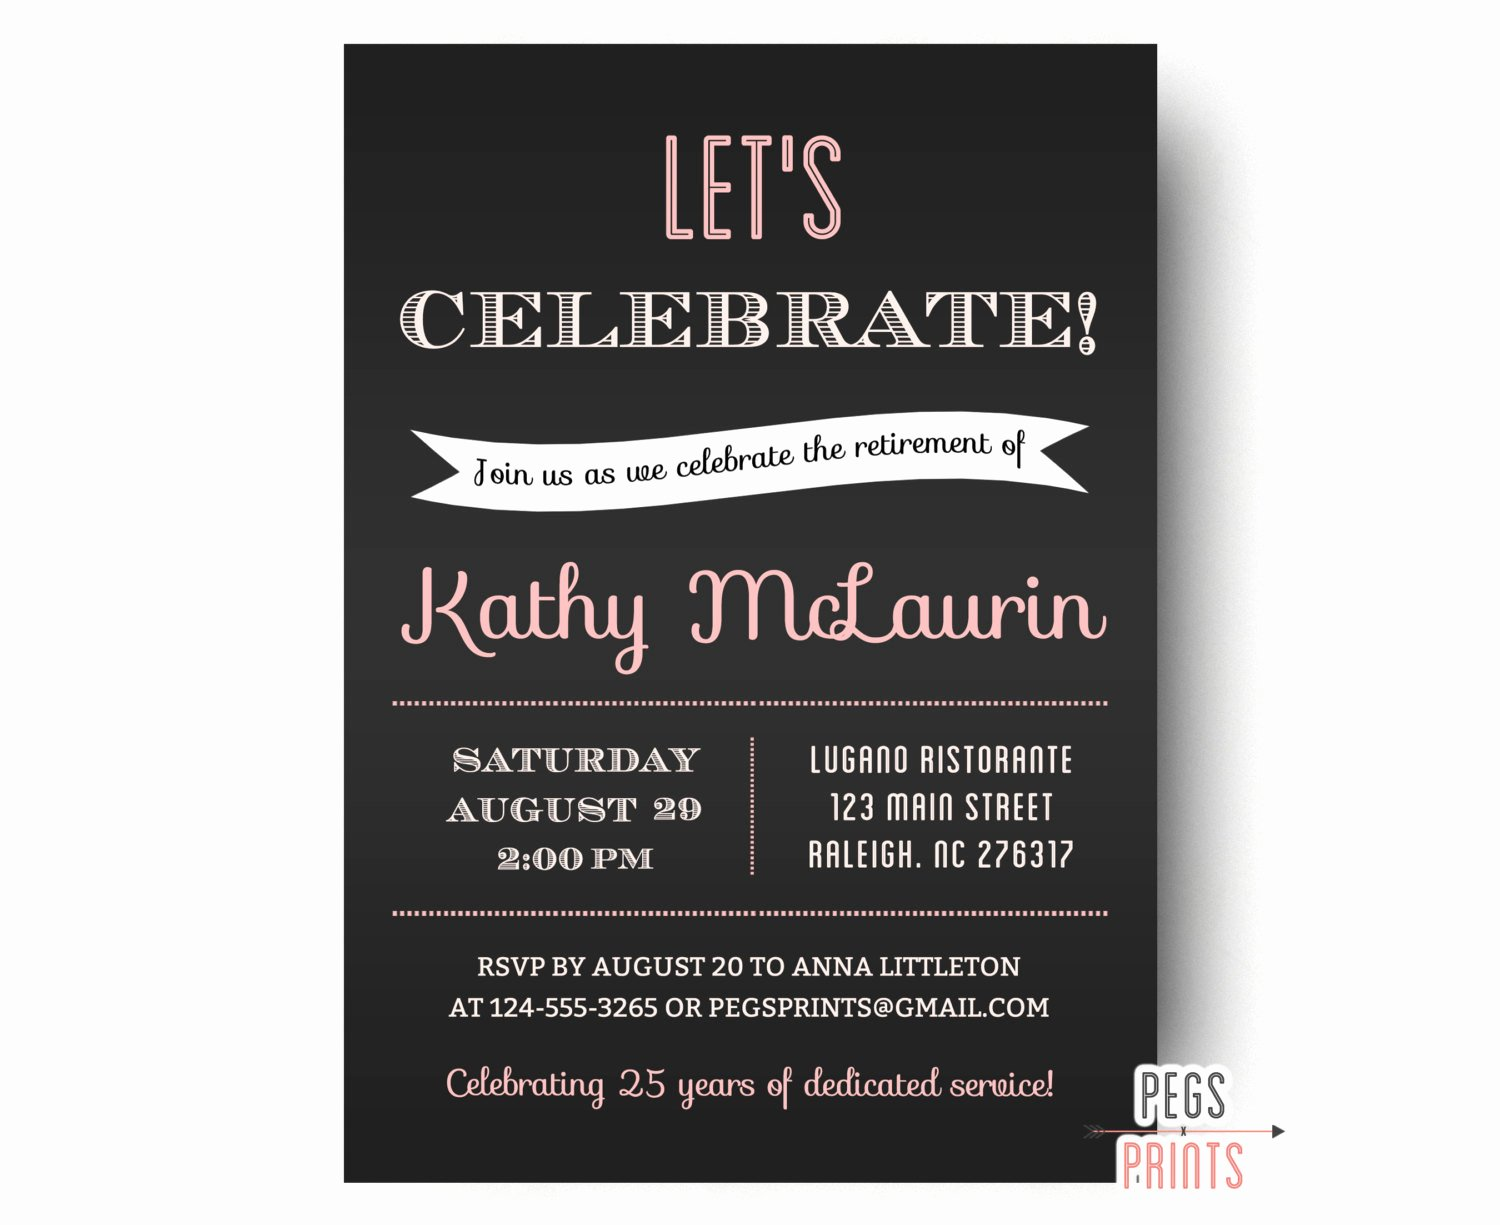 Retirement Invitations Template Free Best Of Retirement Party Invitation Retirement Party Invites